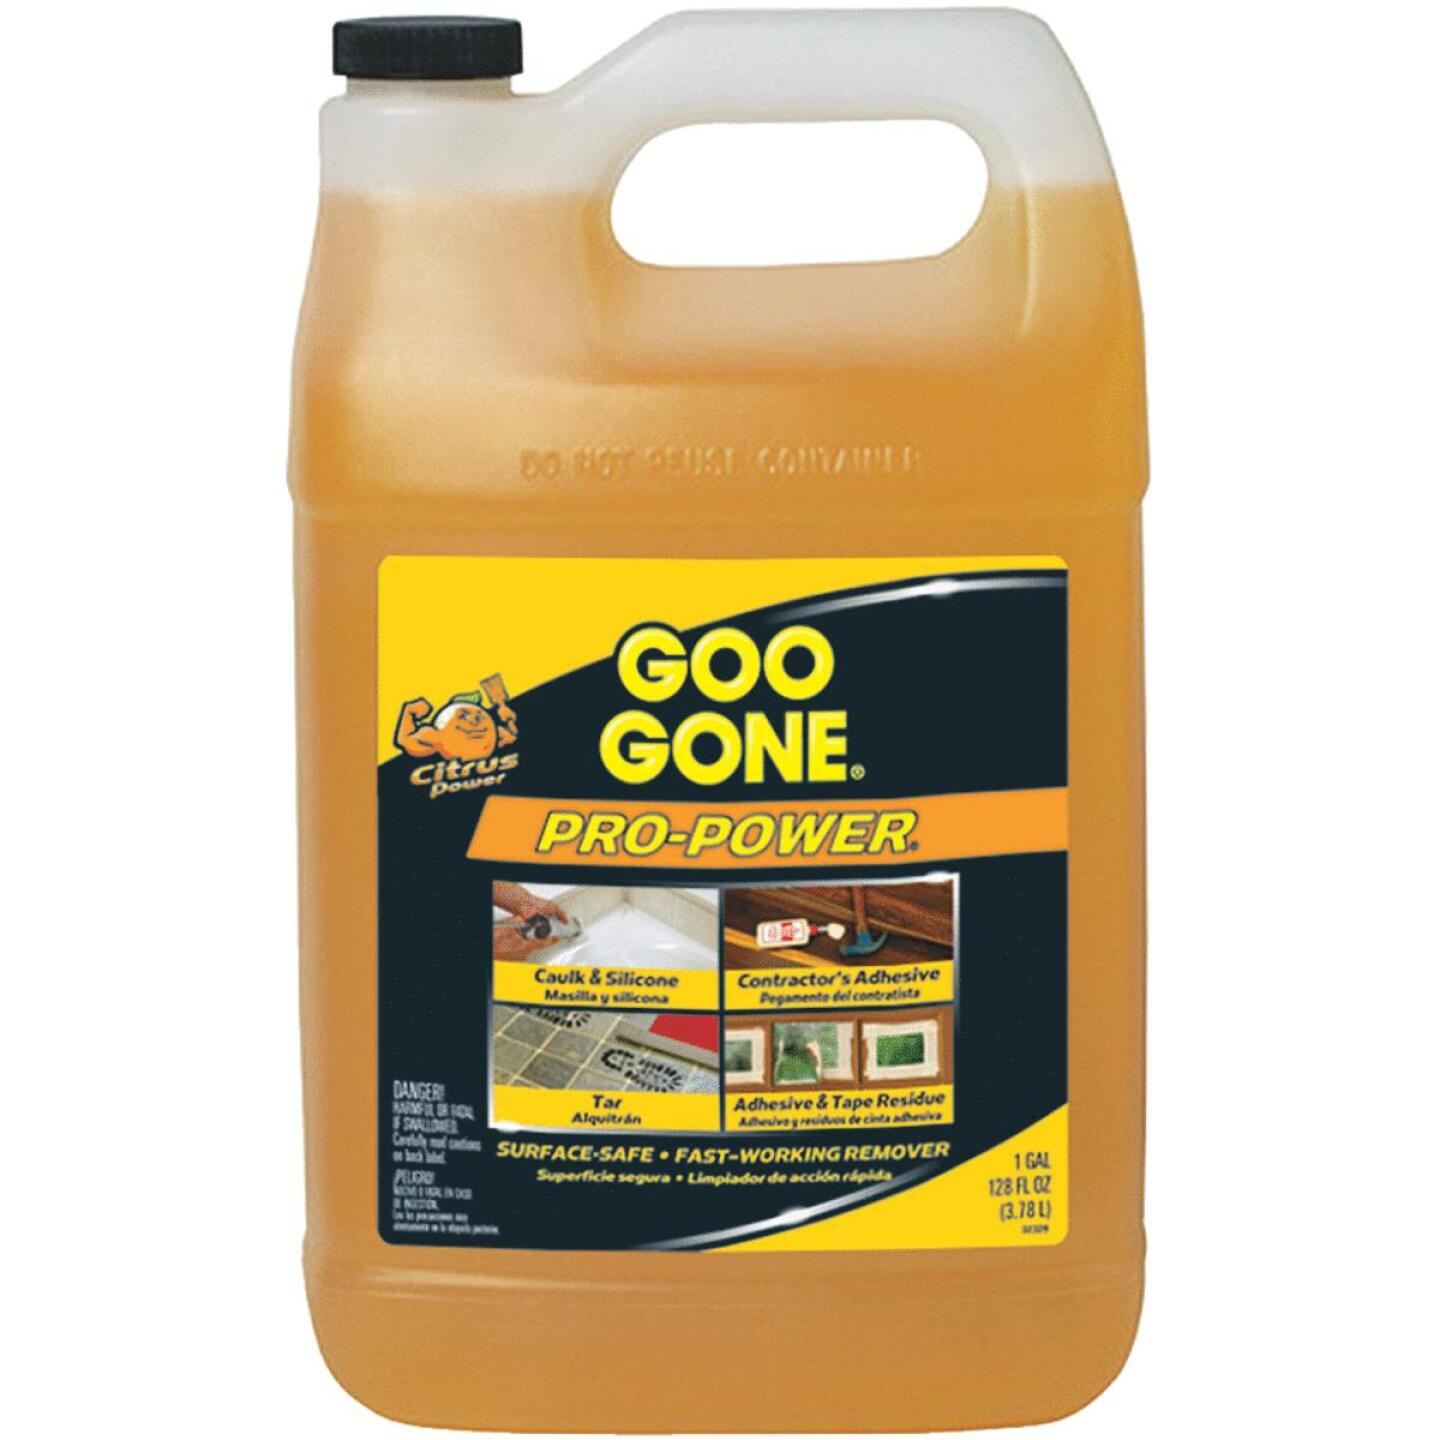 Goo Gone 1 Gal. Pro-Power Adhesive Remover Image 203